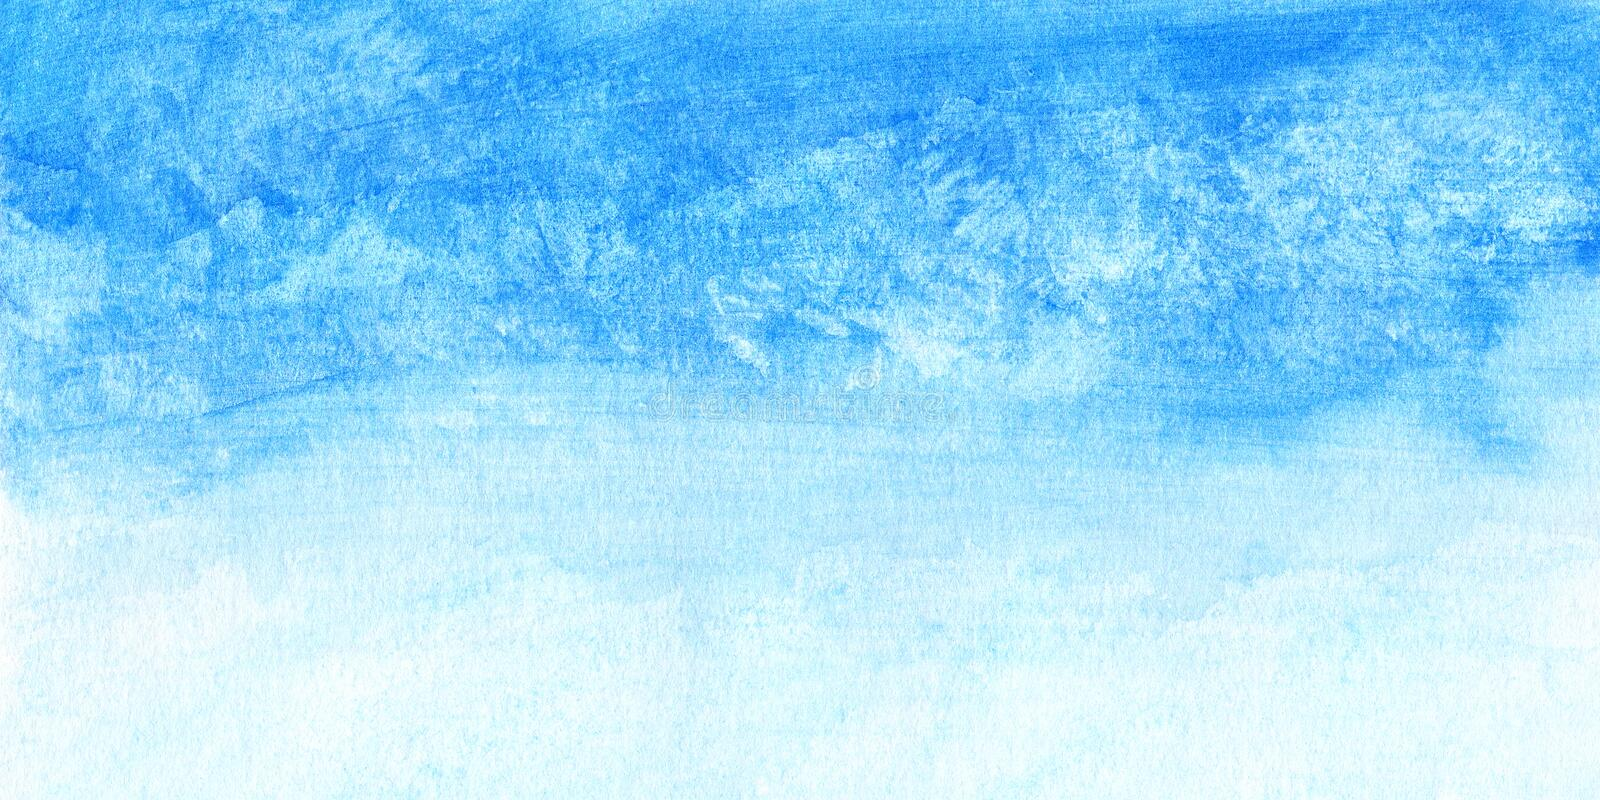 Hand painted watercolor sky and clouds, abstract watercolor background, scanned illustration stock illustration